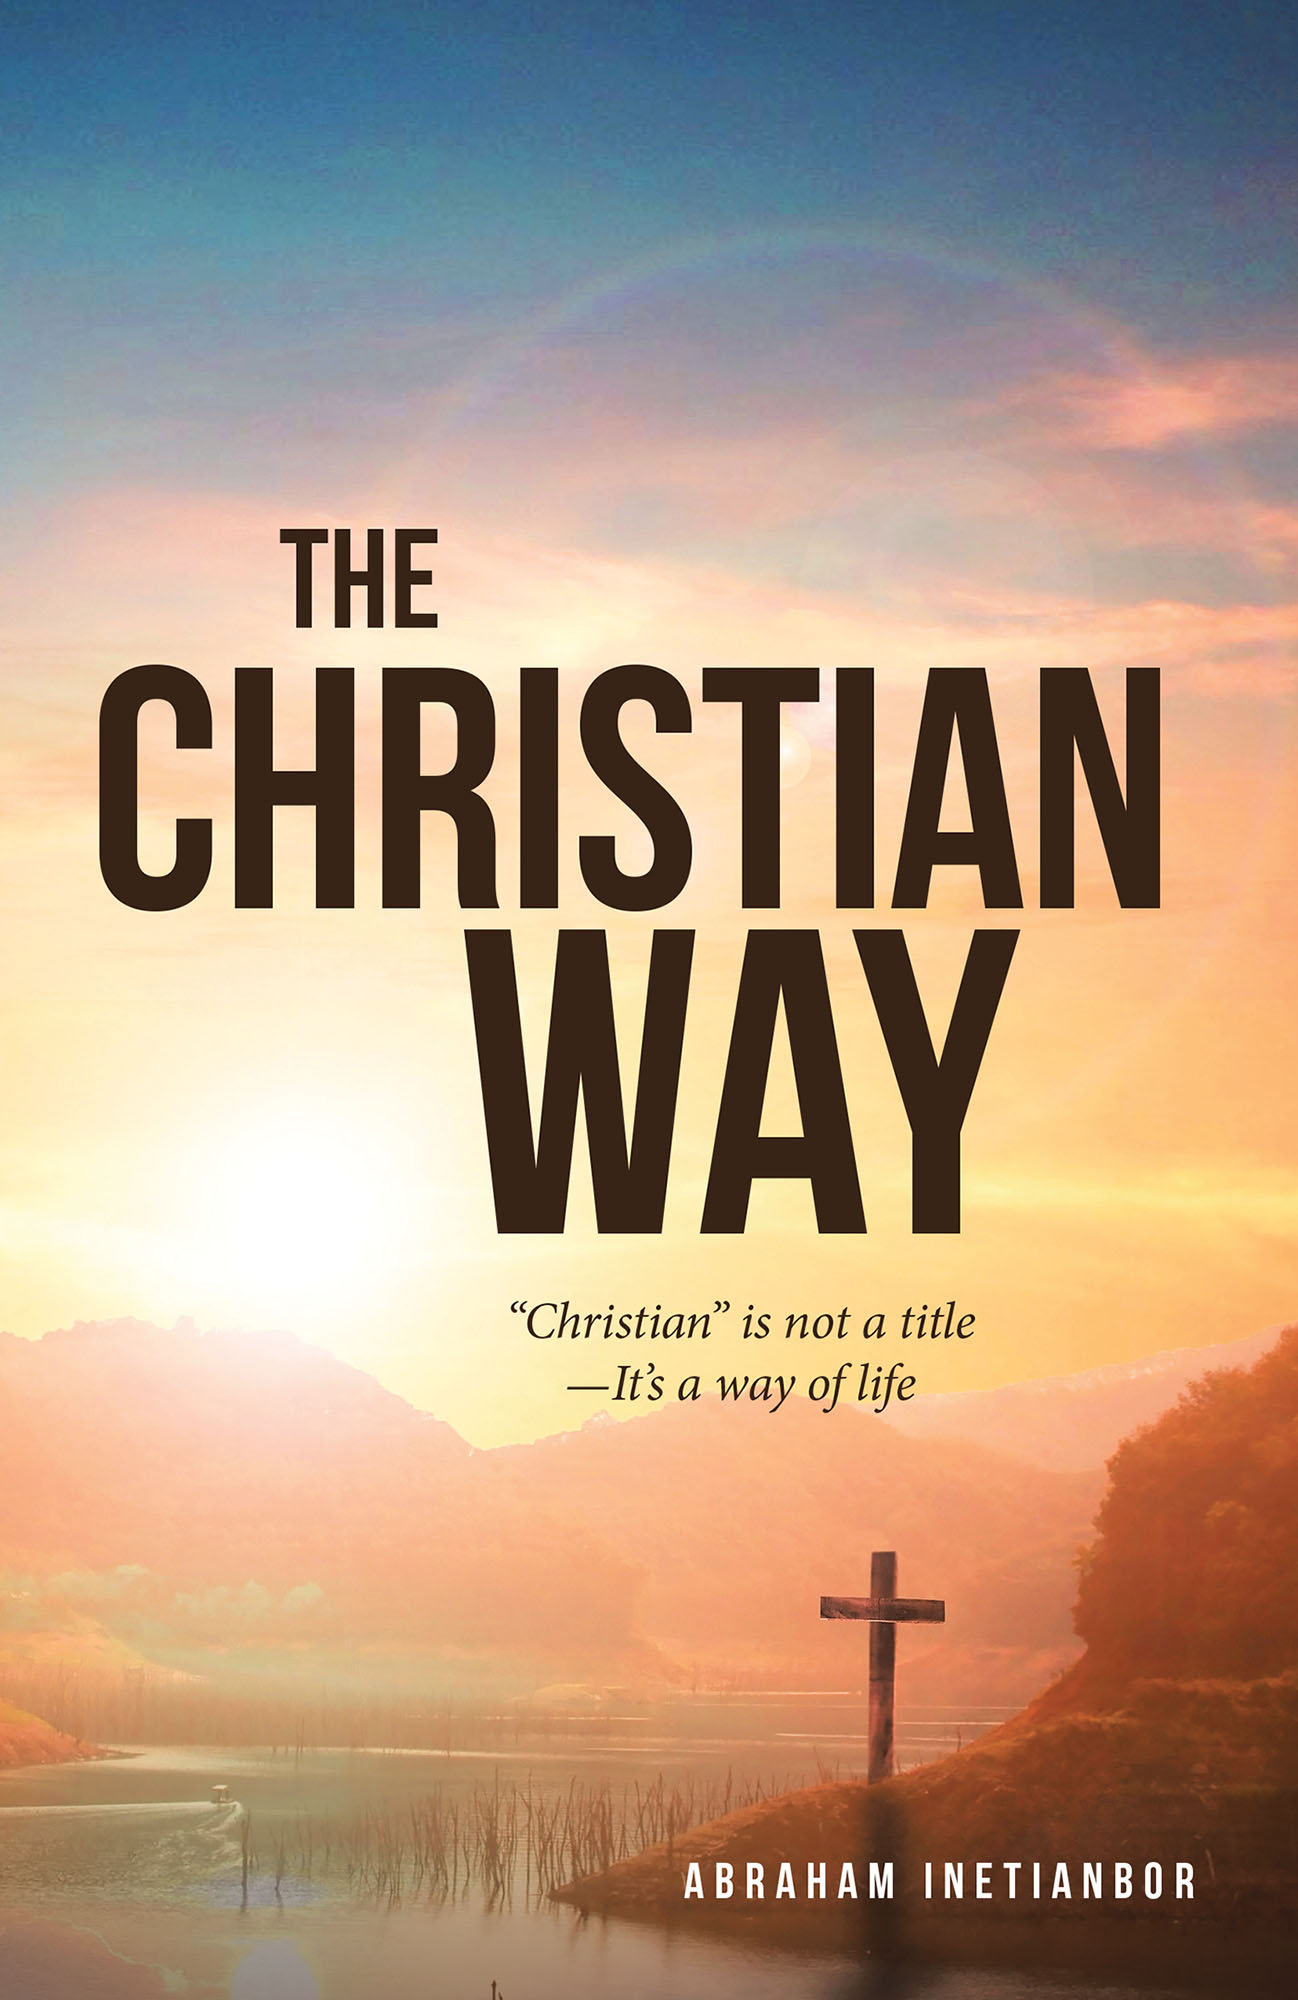 The Christian Way